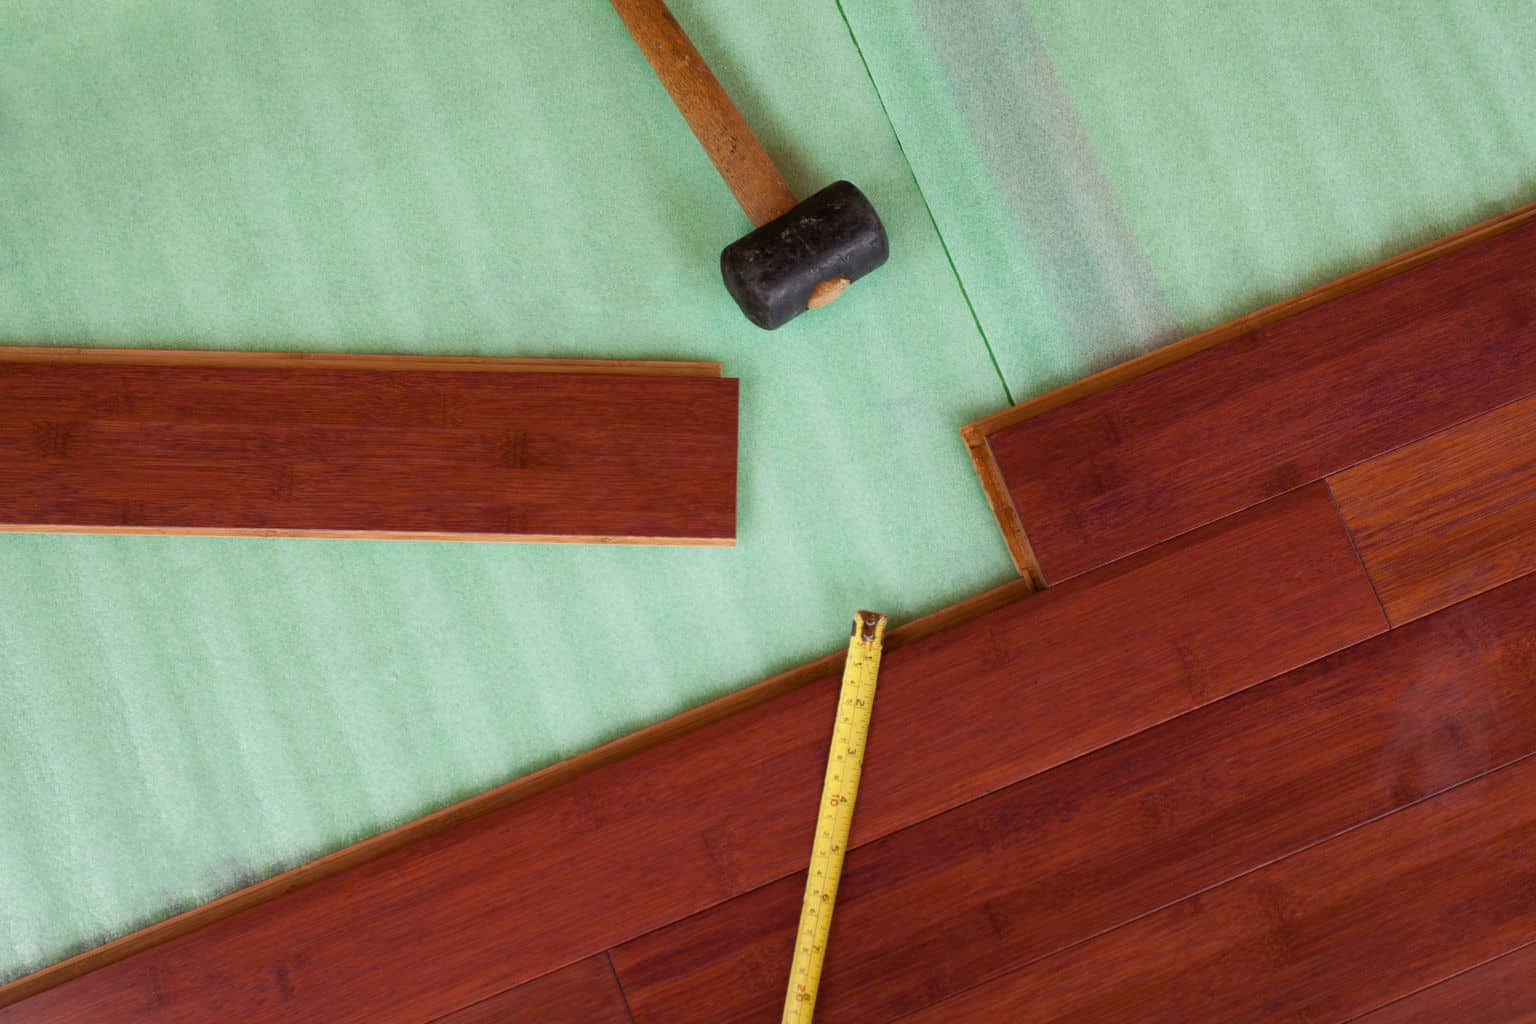 Laminate Floor Underlayment 6mm forna cork underlayments How To Install The Underlay That Goes Beneath It The Process Is Rather Simple And Not Too Costly So Virtually Anyone Who Follows The Steps Closely